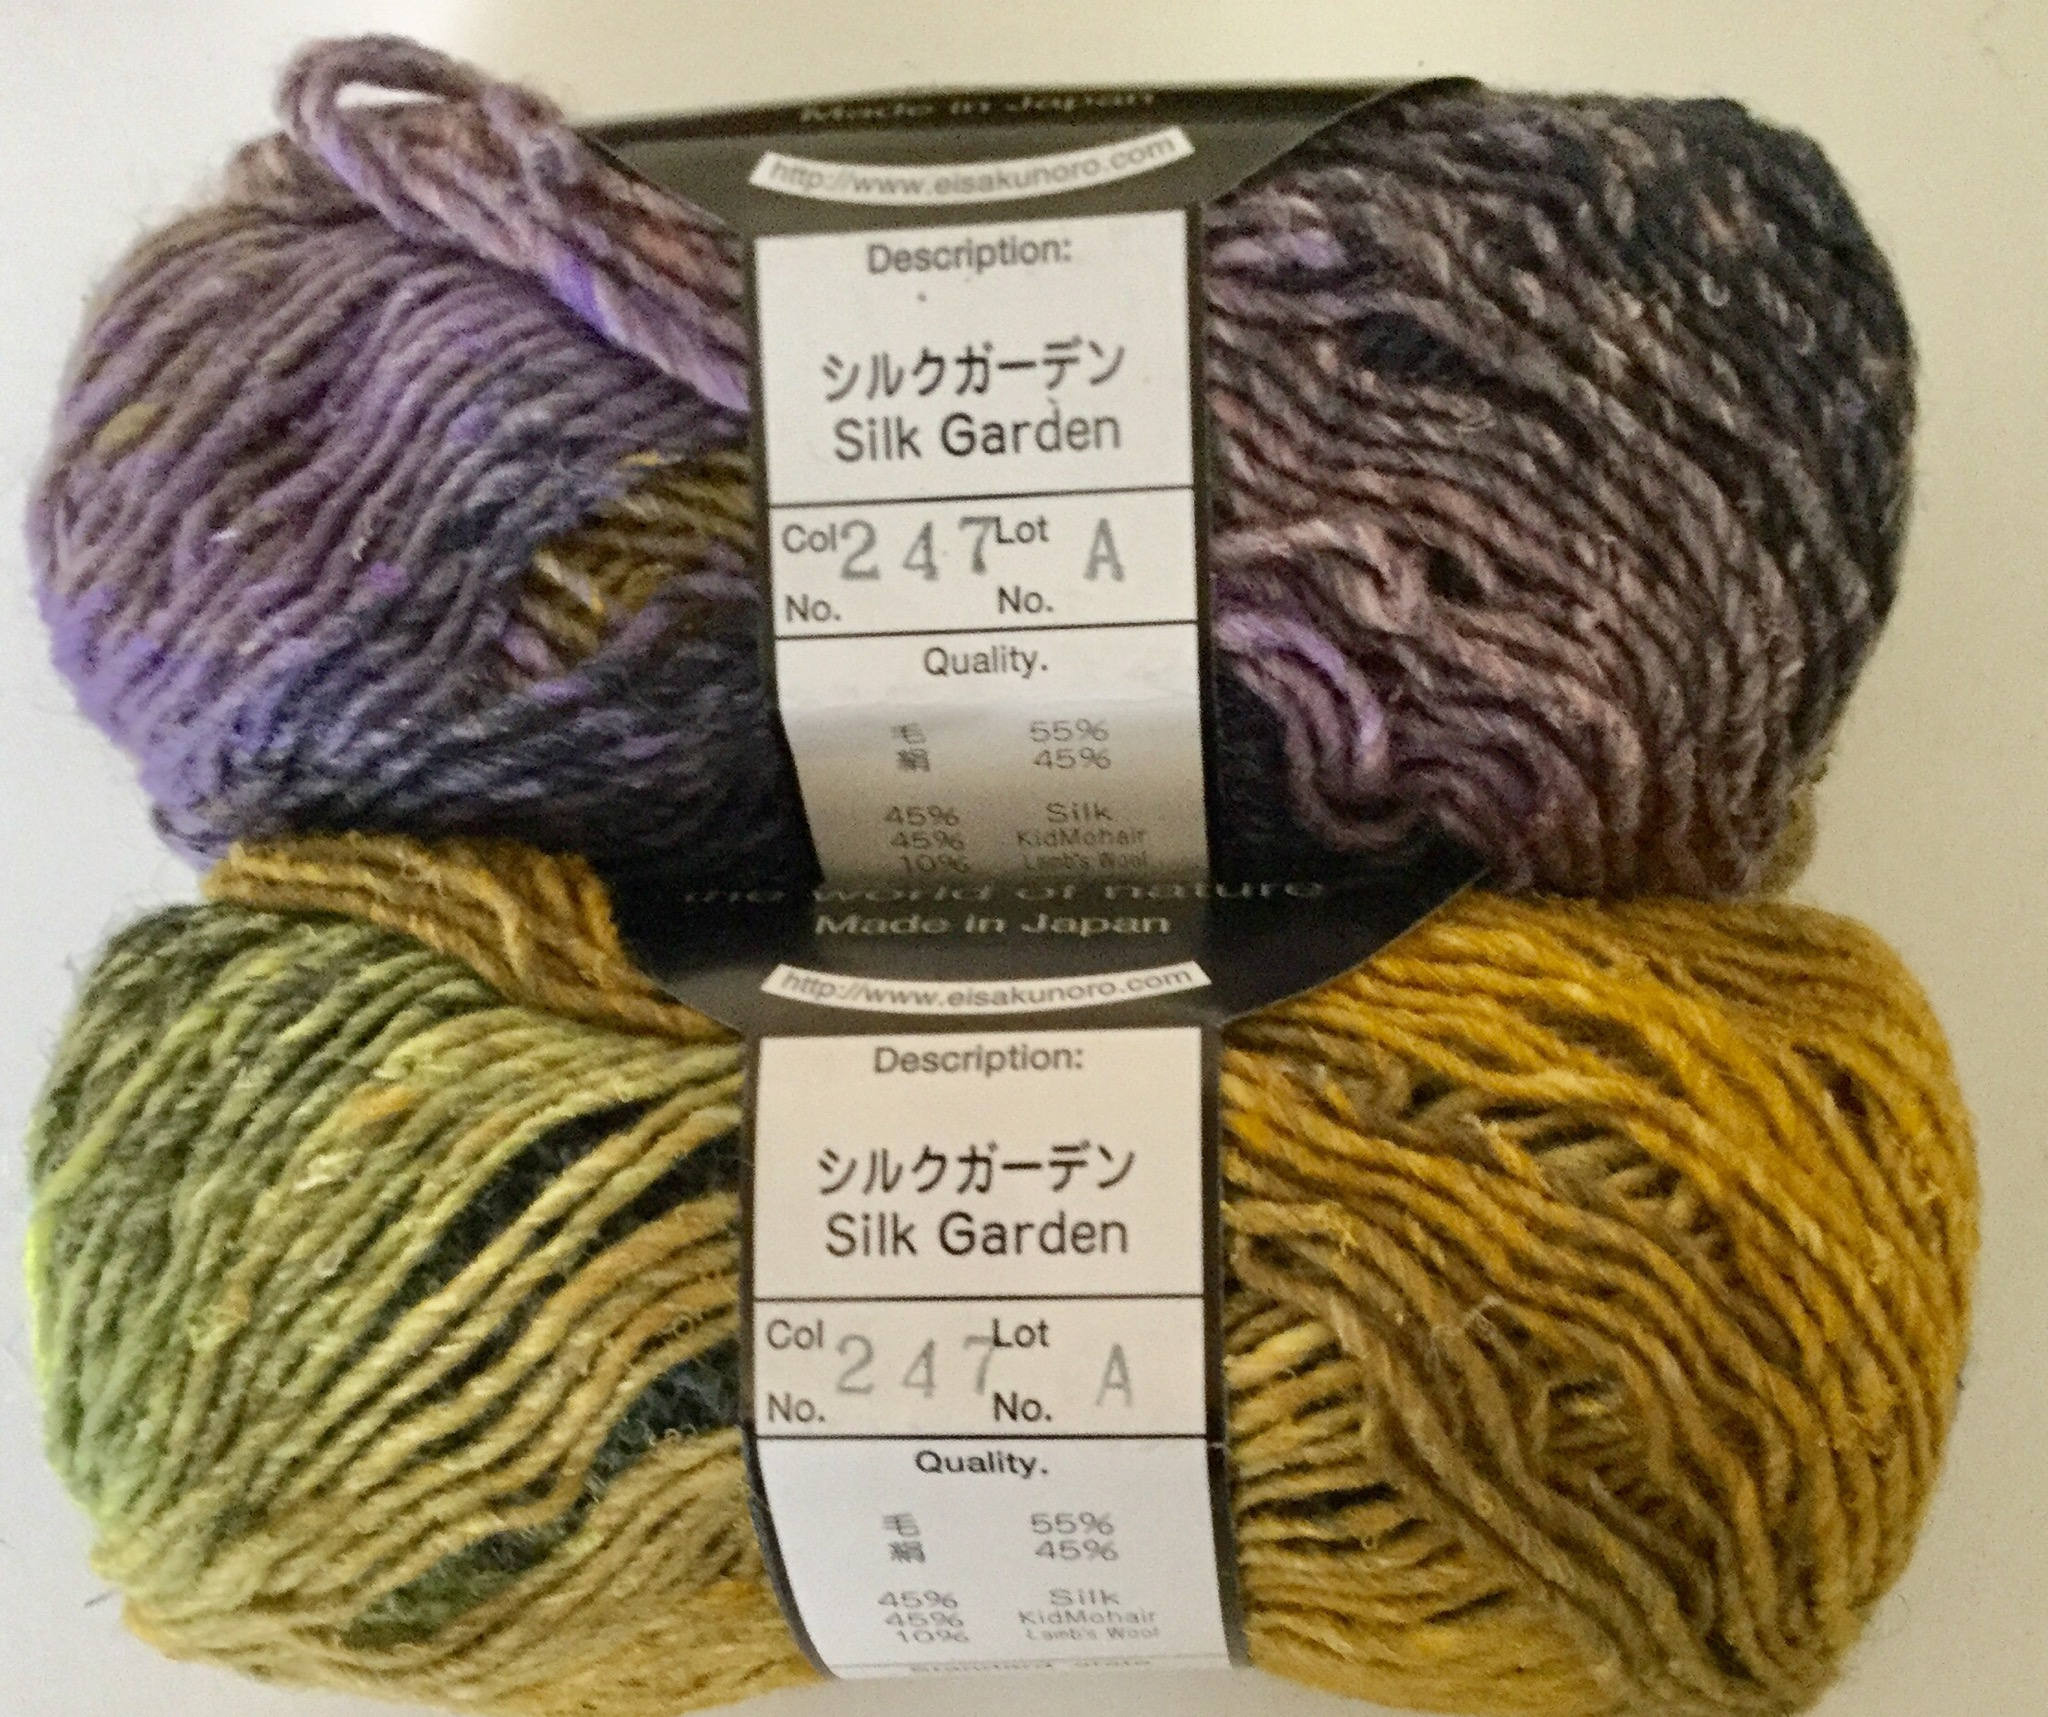 Noro Silk Garden Yarn 247A 10 skeins available Price is